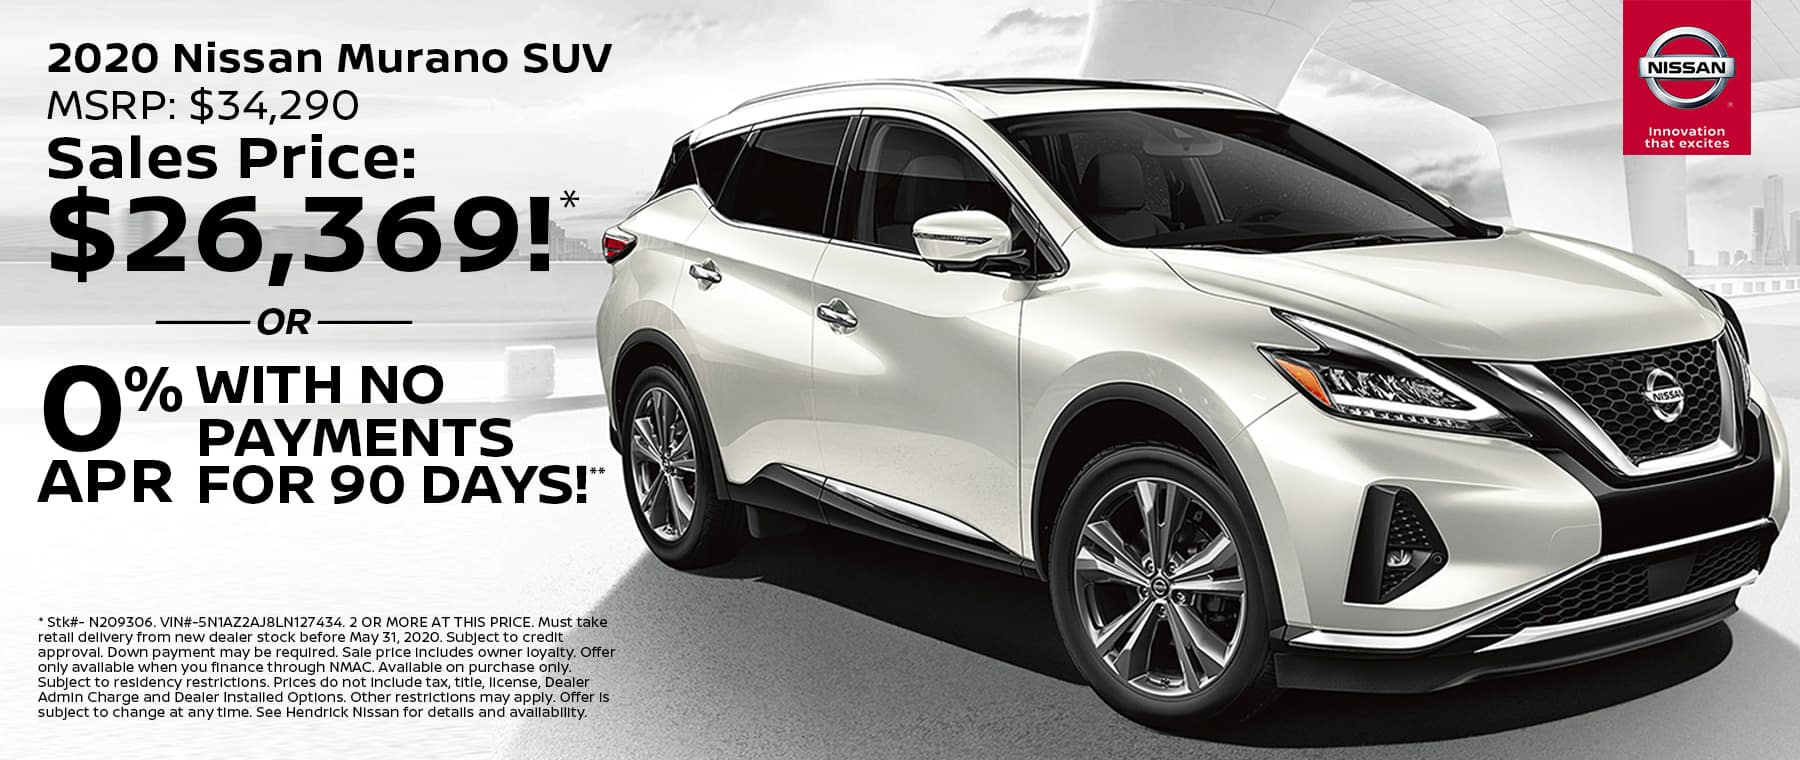 KC Nissan May20 TR New Vehicle Specials MURANO 1800x760